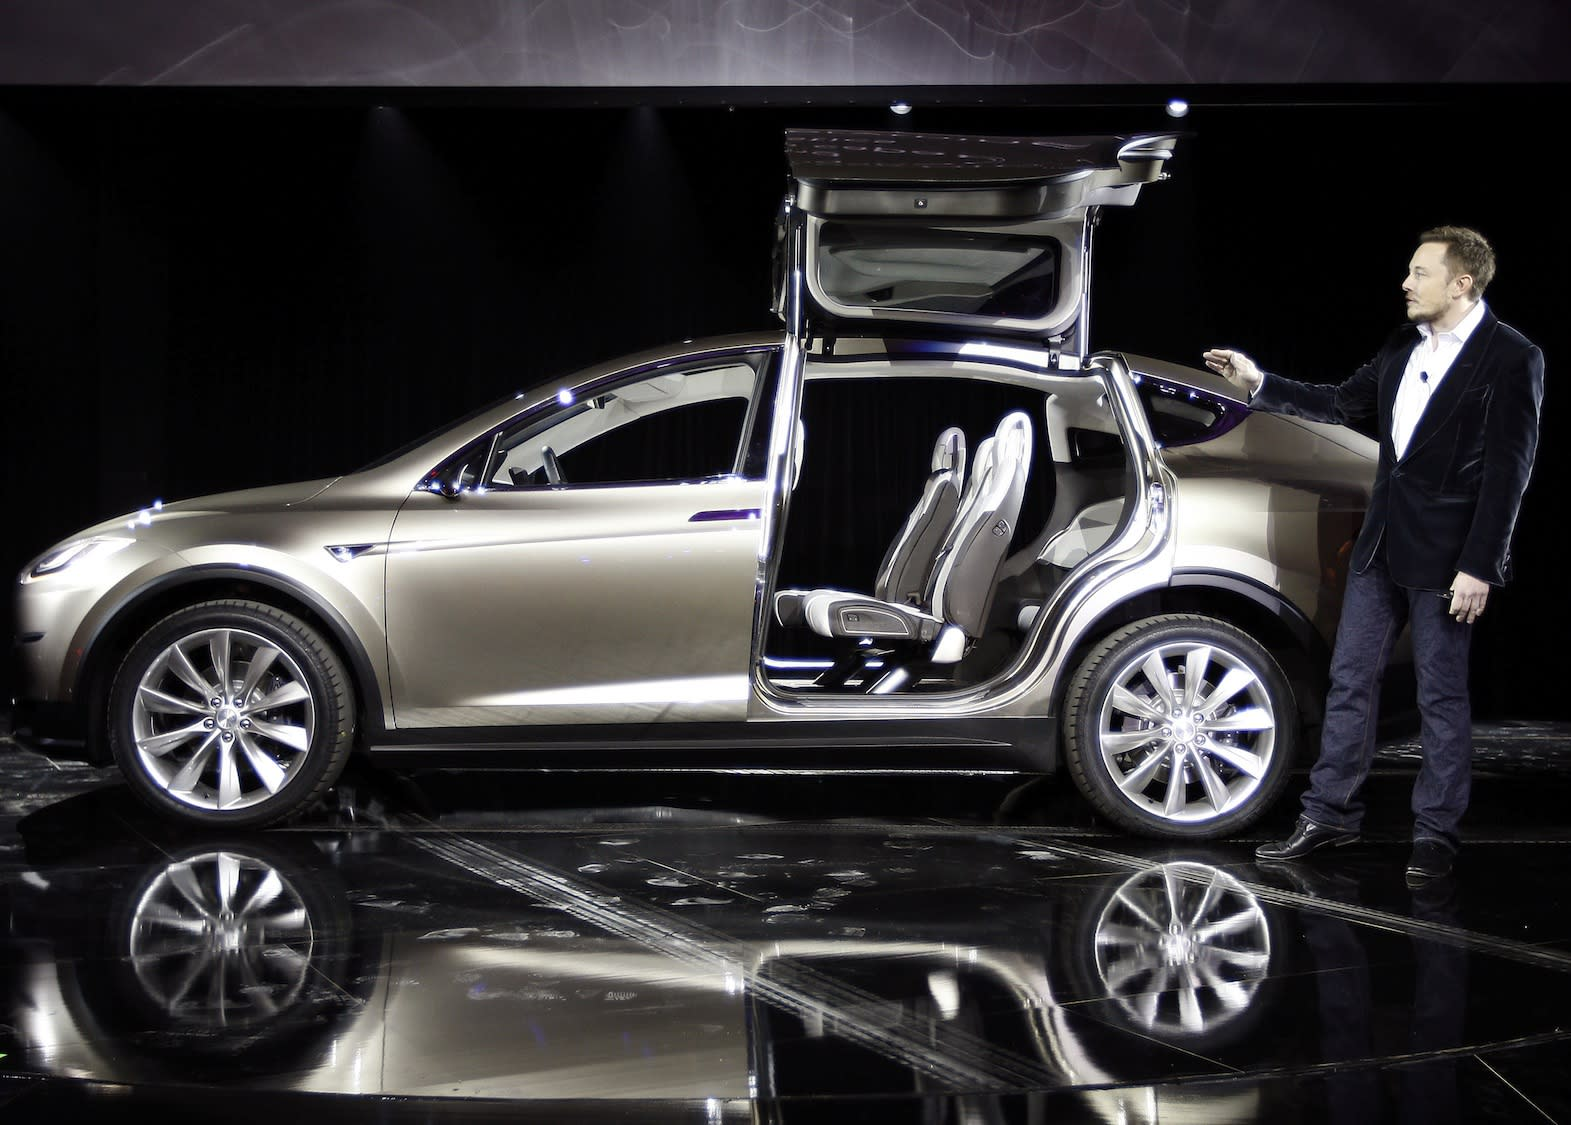 Tesla: We aren't a giant car company and could get crushed